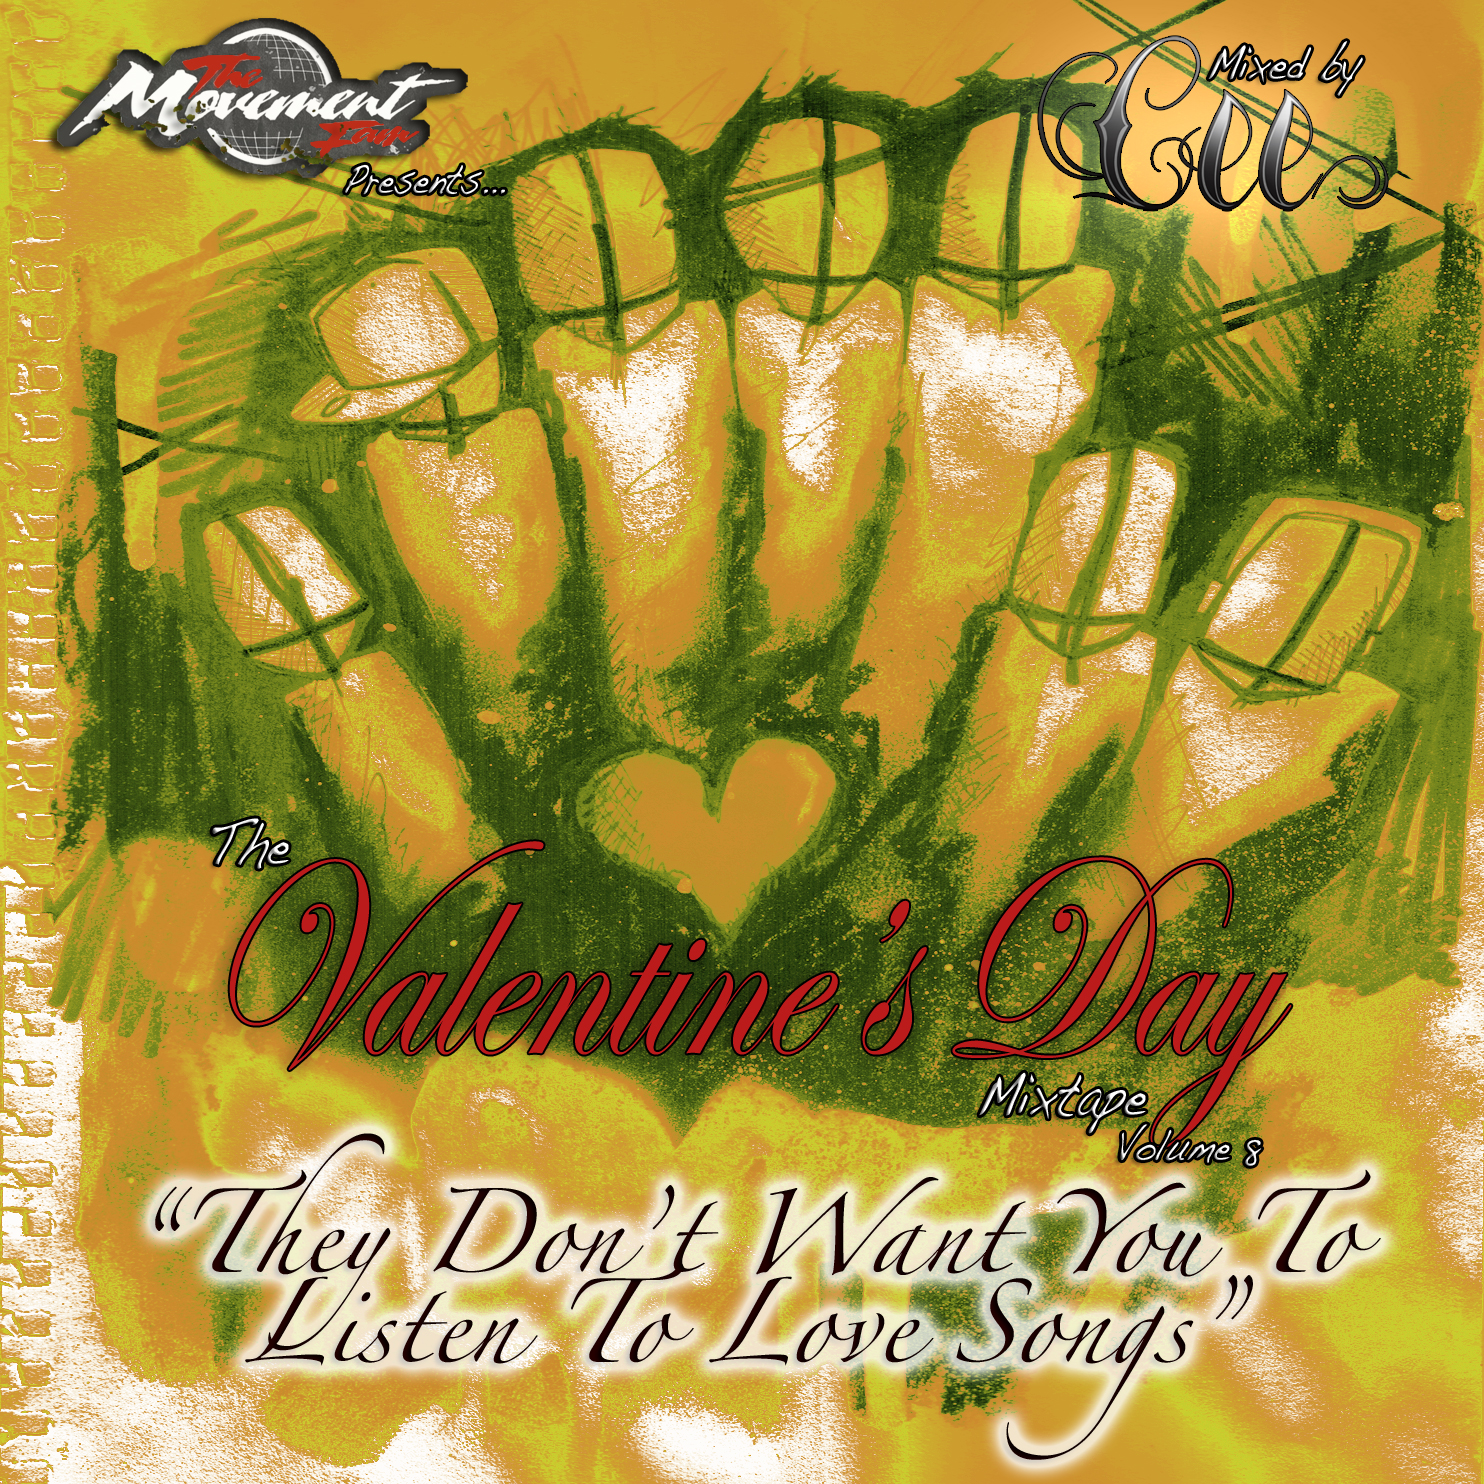 Valentines-Day-Cover-Vol-8-Front.jpg